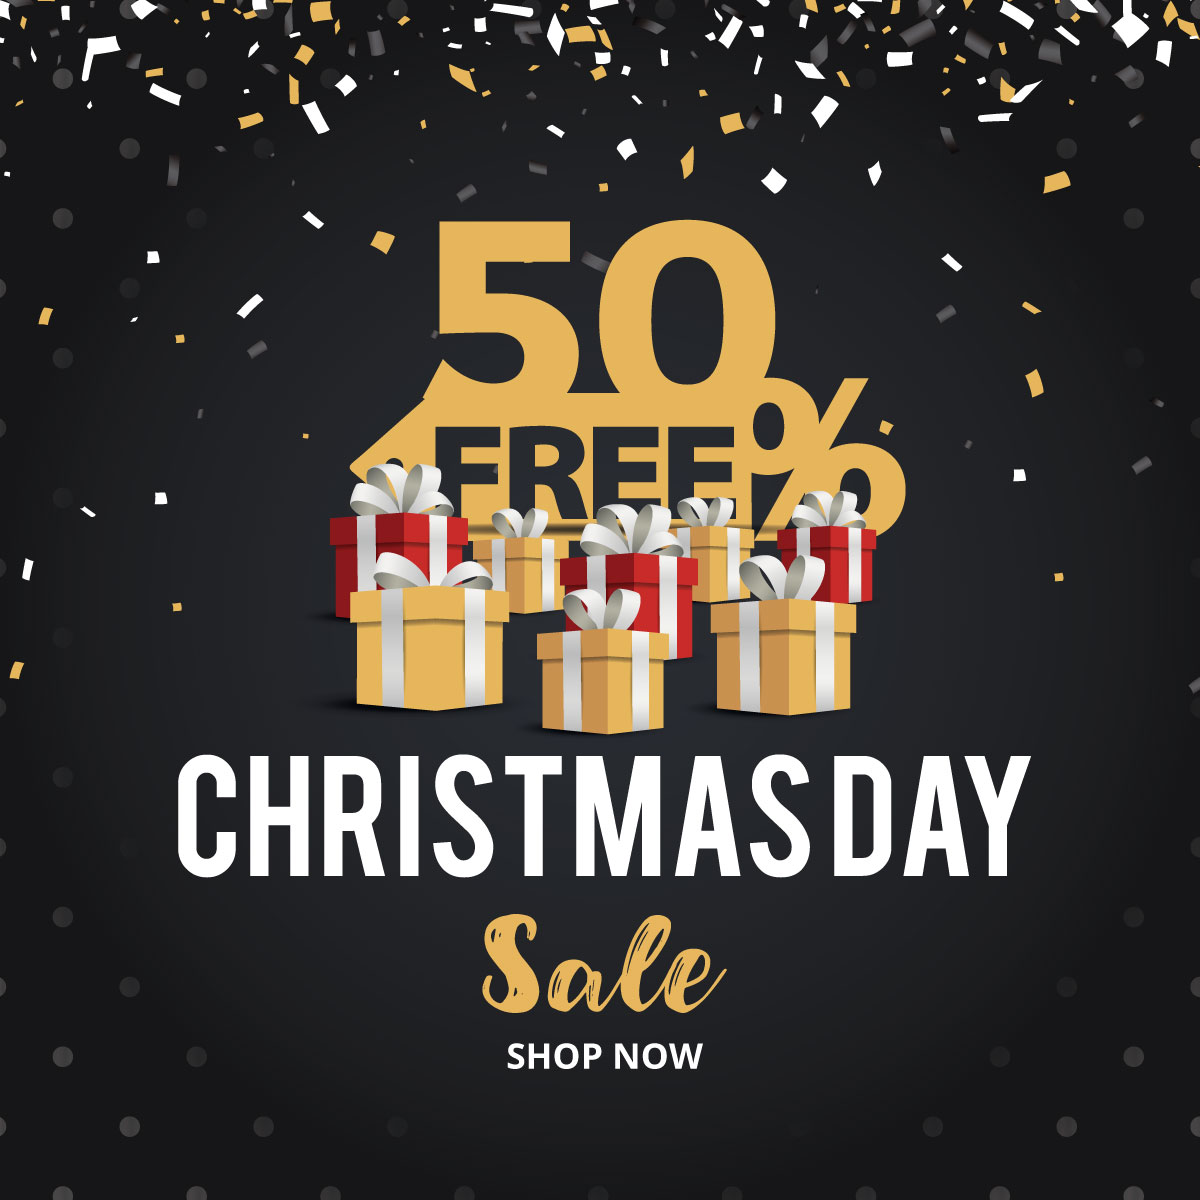 Christmas and New Year 2018 Discount Sale banners example image 1